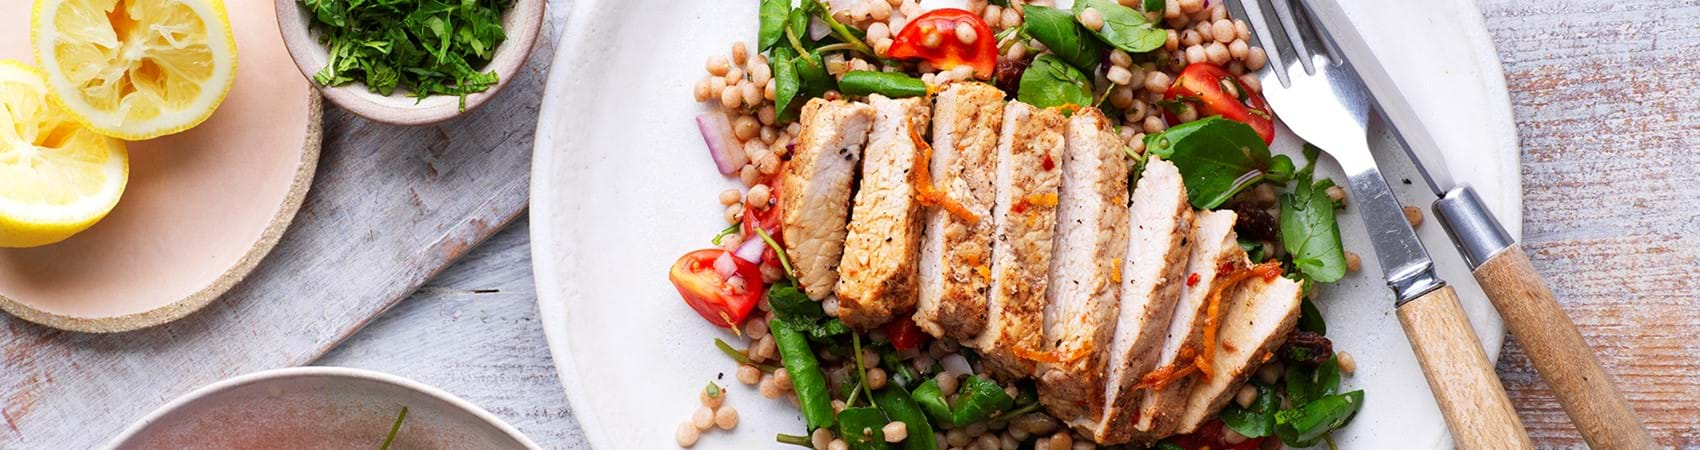 Cinnamon and Orange Pork with Wholegrain Couscous